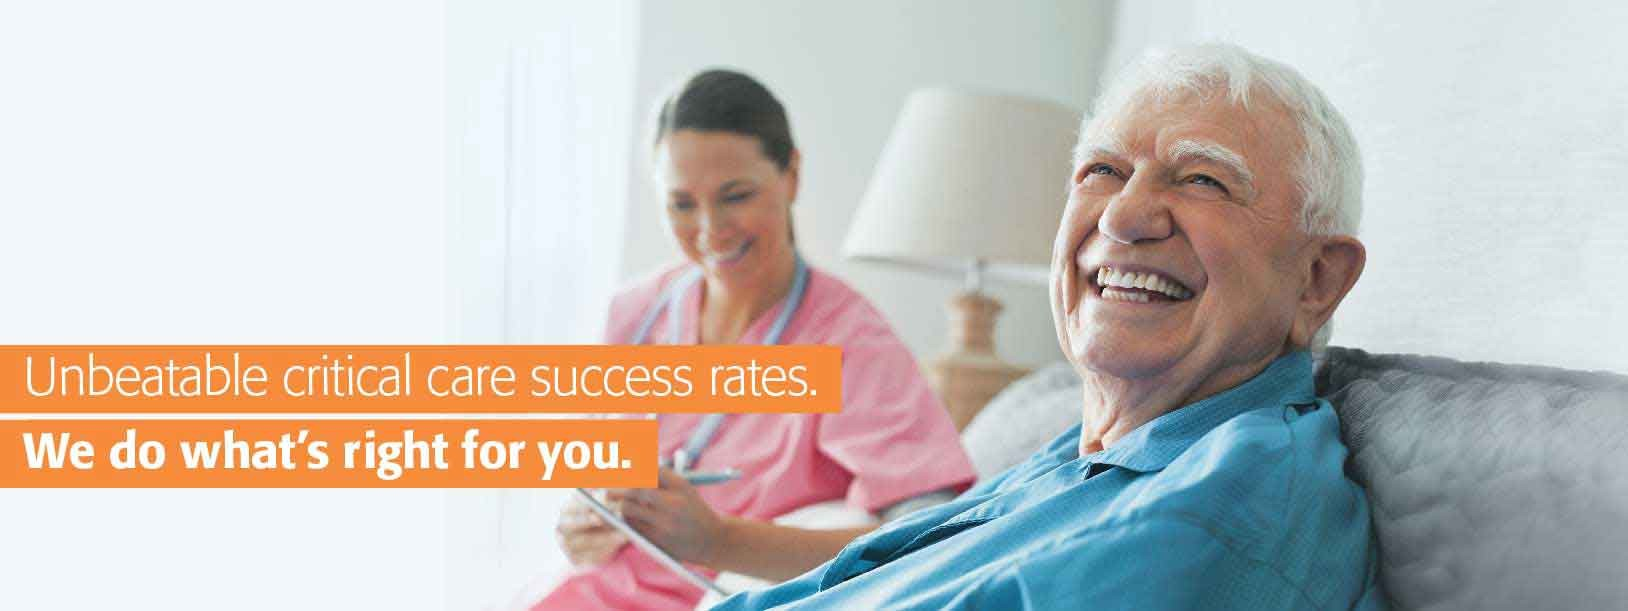 unbeatable critical care success rates we do what's right for you